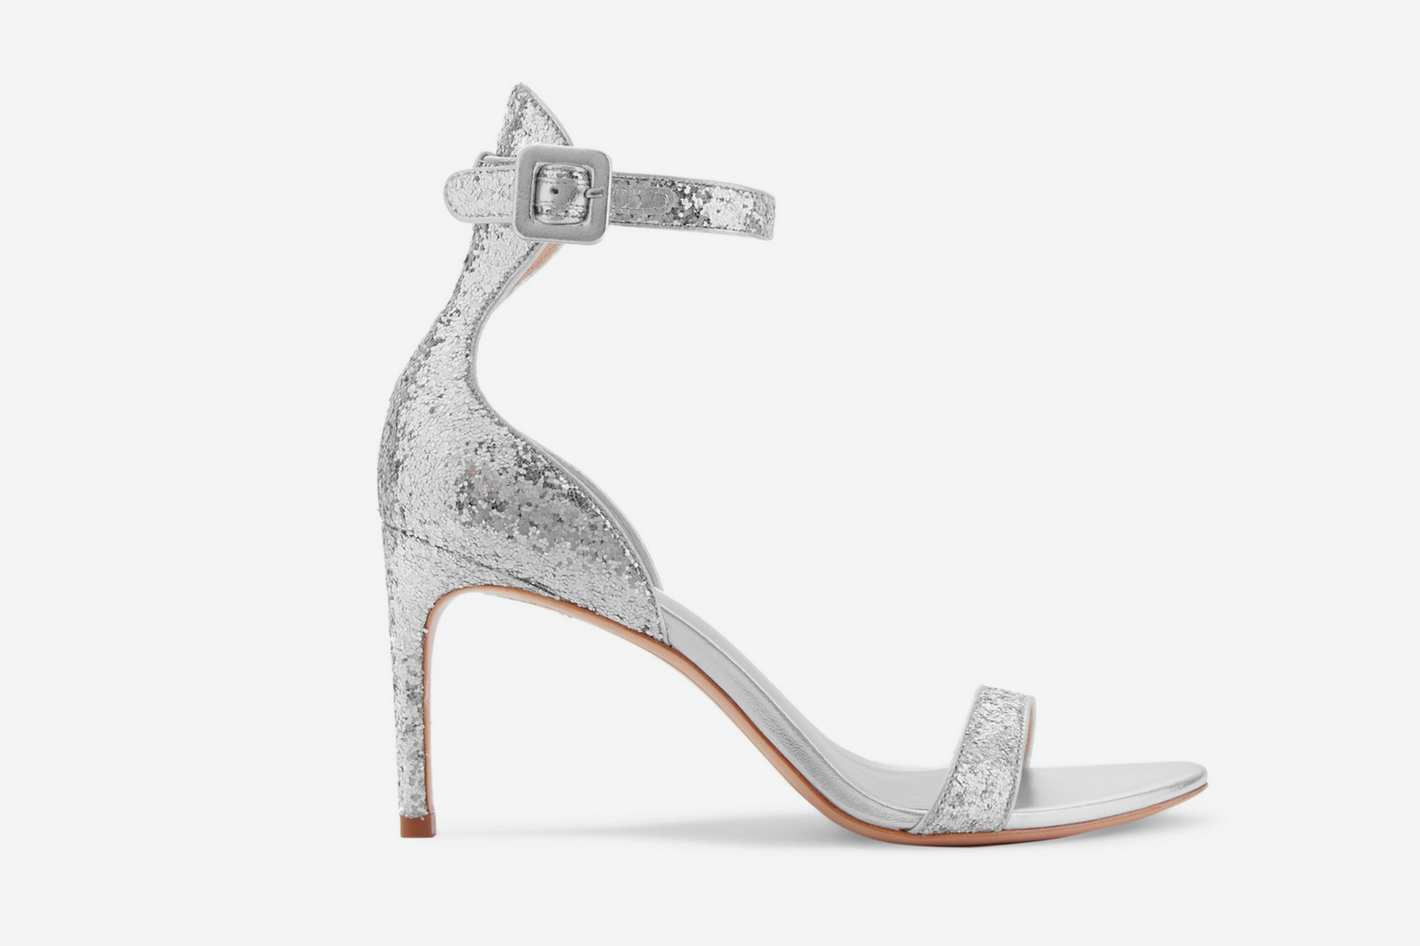 Sophia Webster Nicole Glittered Leather Sandals